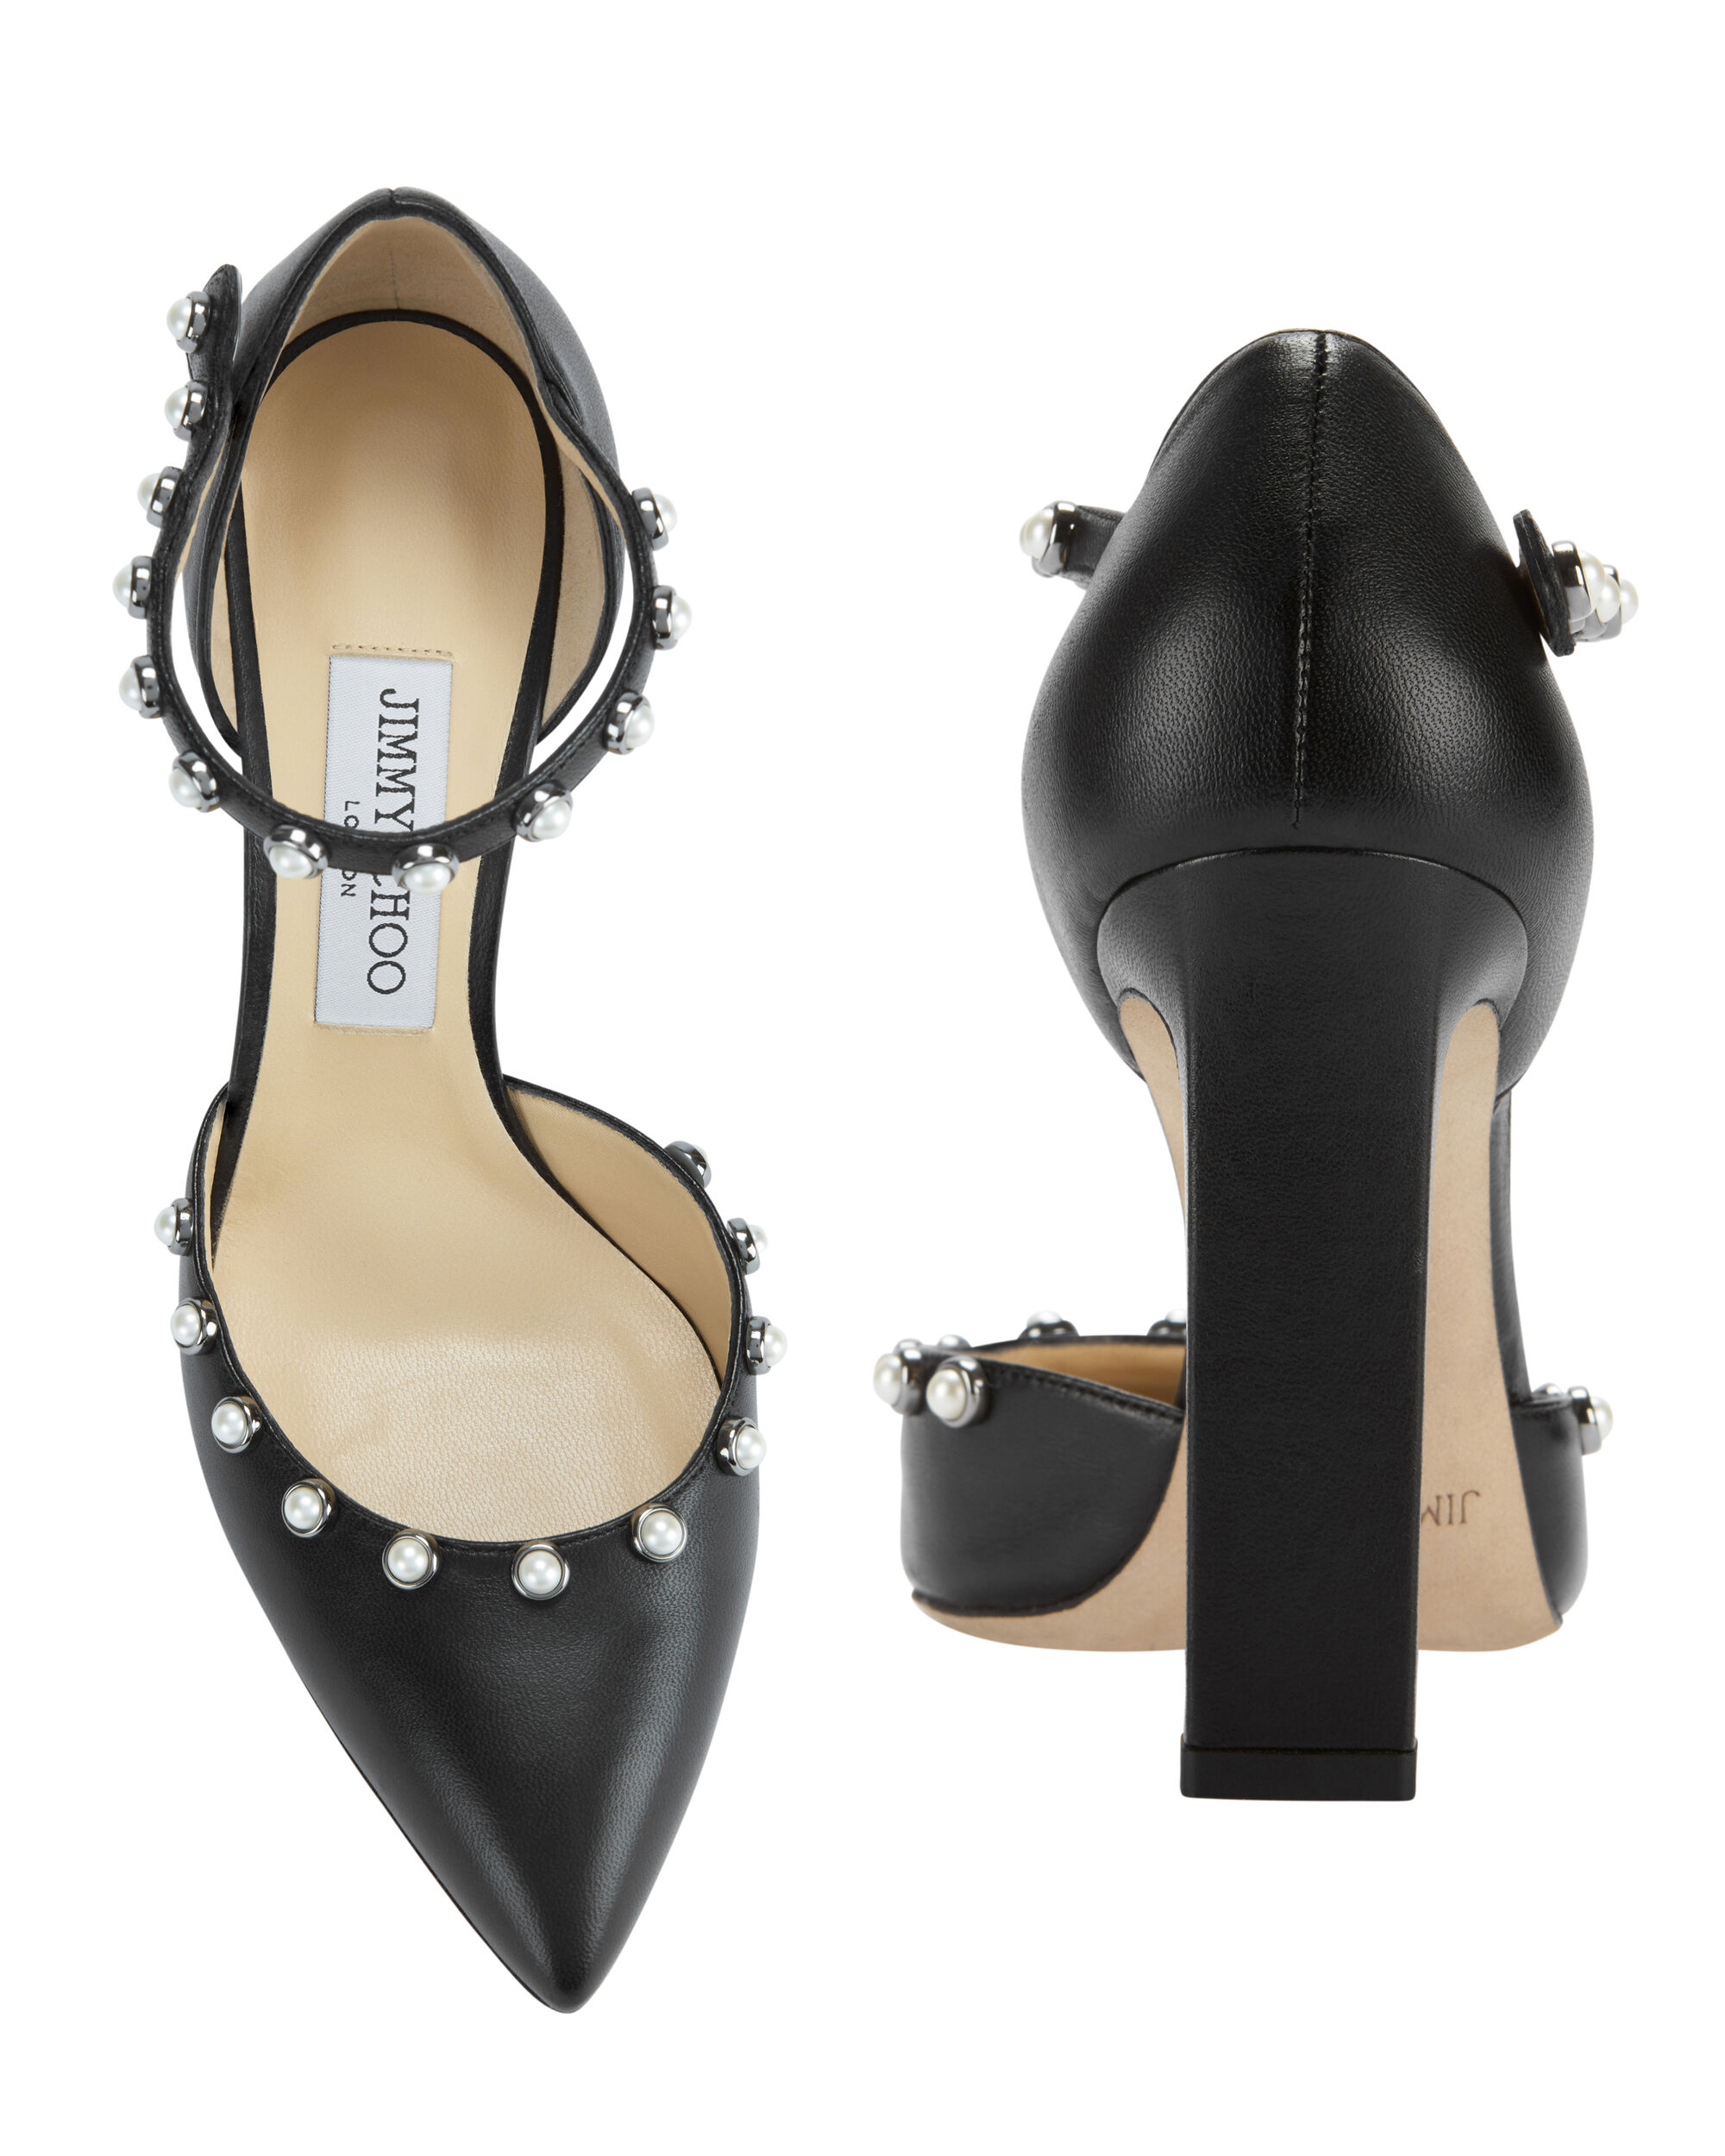 Leema Pearl-Studded Pumps, BLACK, hi-res